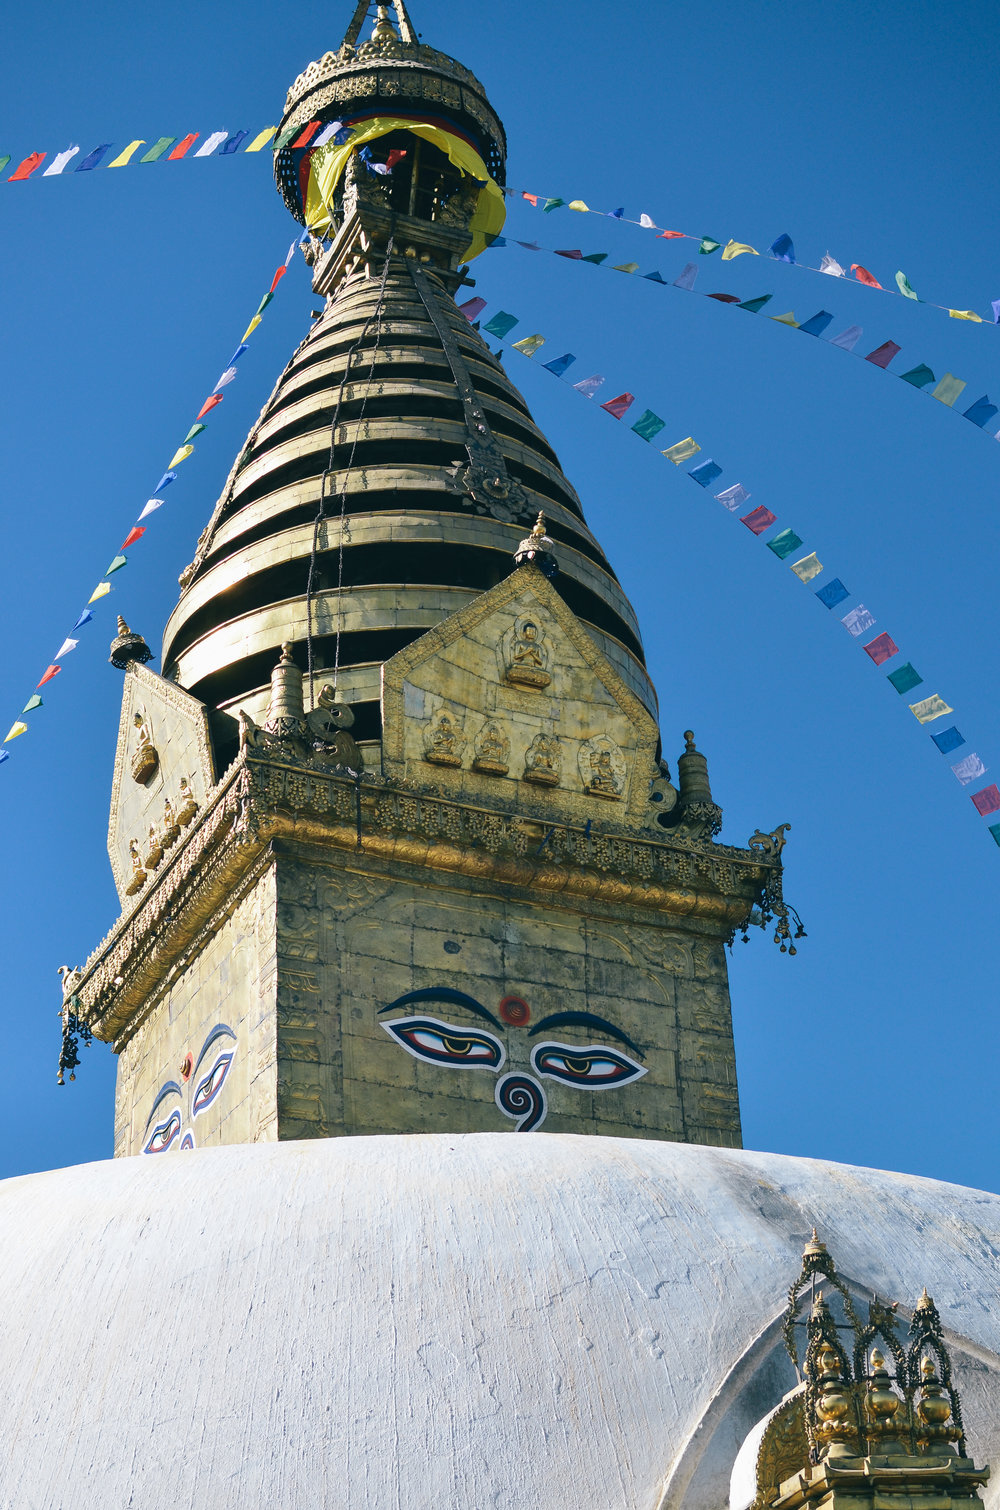 10-things-to-know-kathmandu-nepal-lifeonpine_DSC_1724.jpg